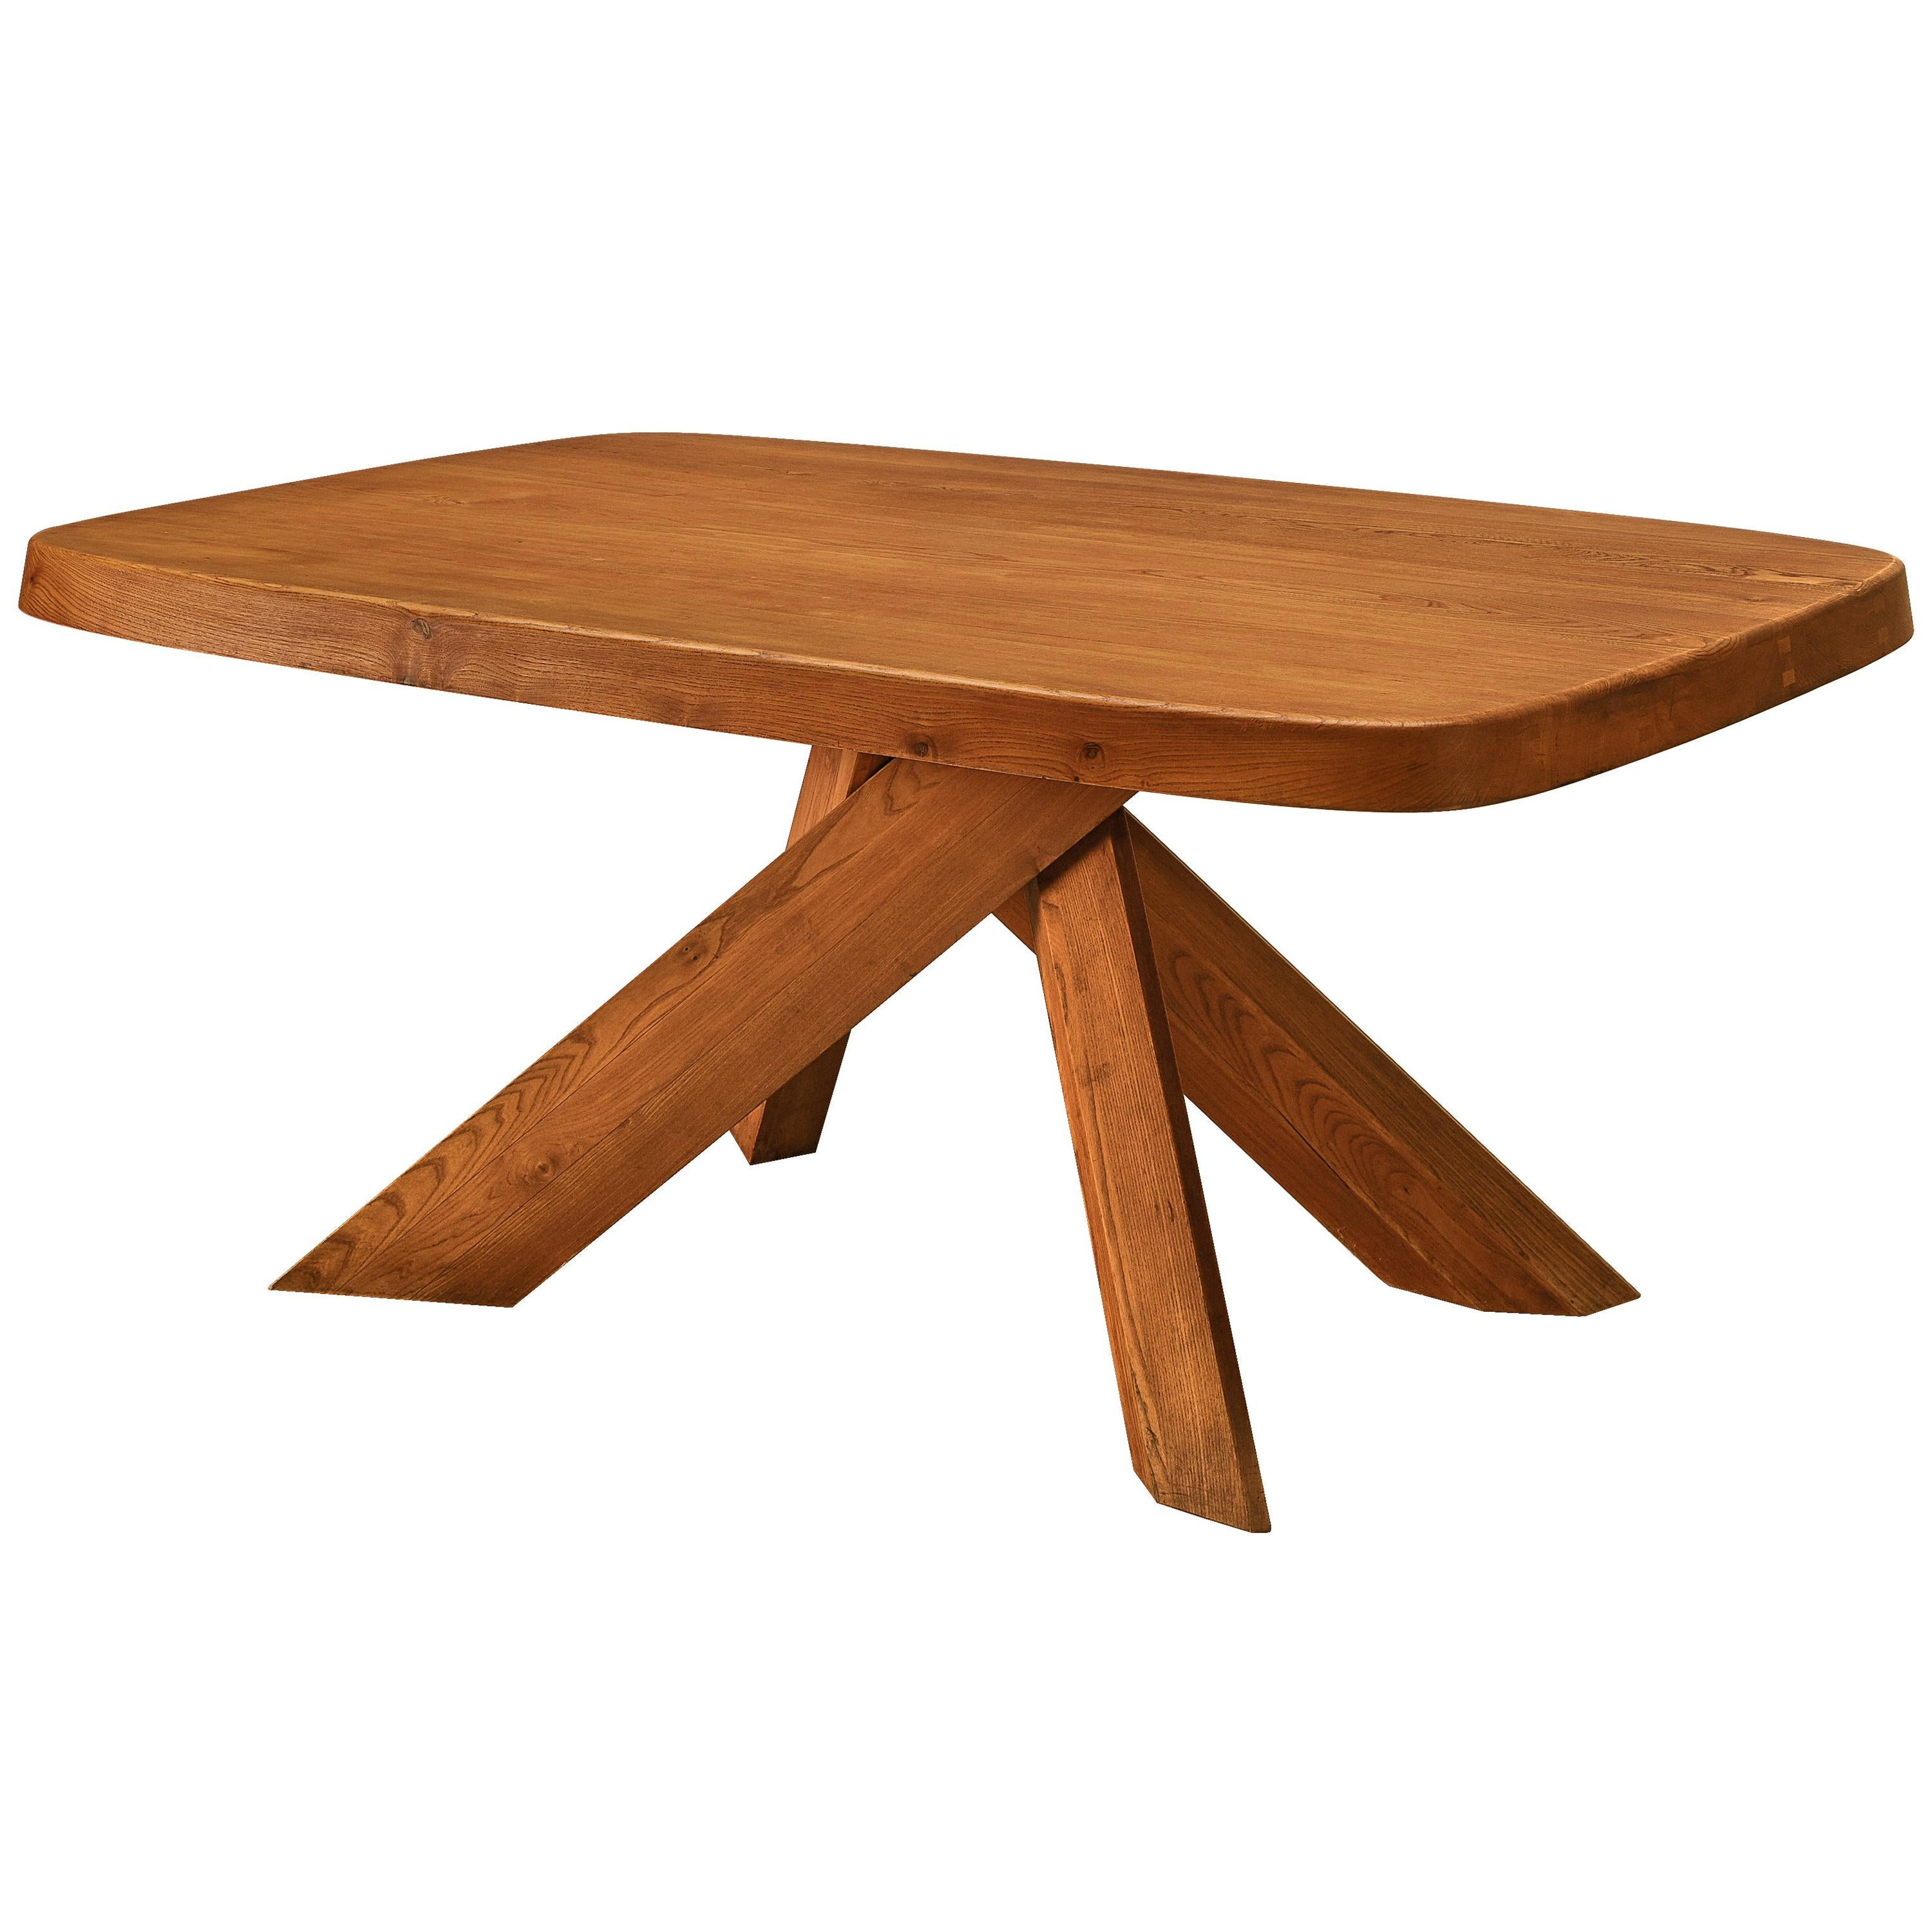 Pierre Chapo 'Aban' Table T35BC in Solid Elm